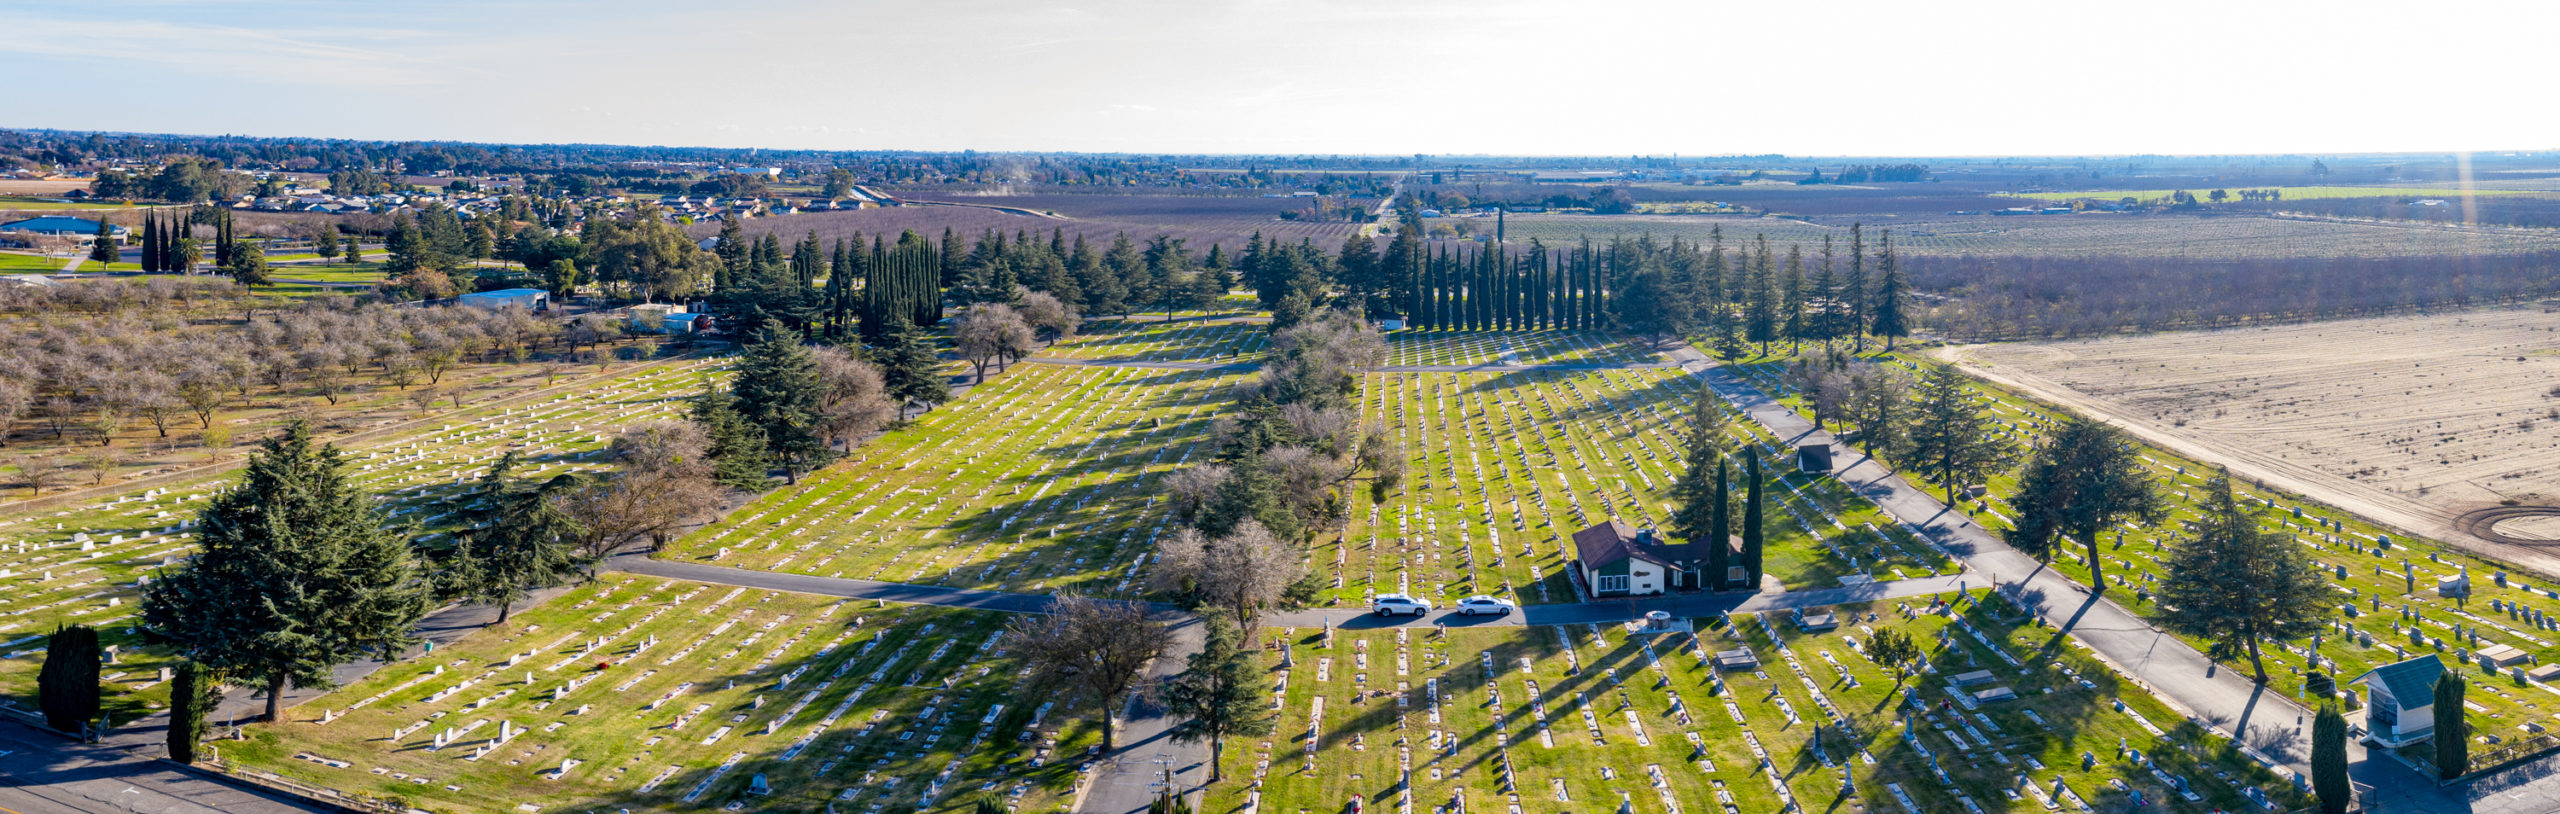 Panoramic view of the front of winton cemetery